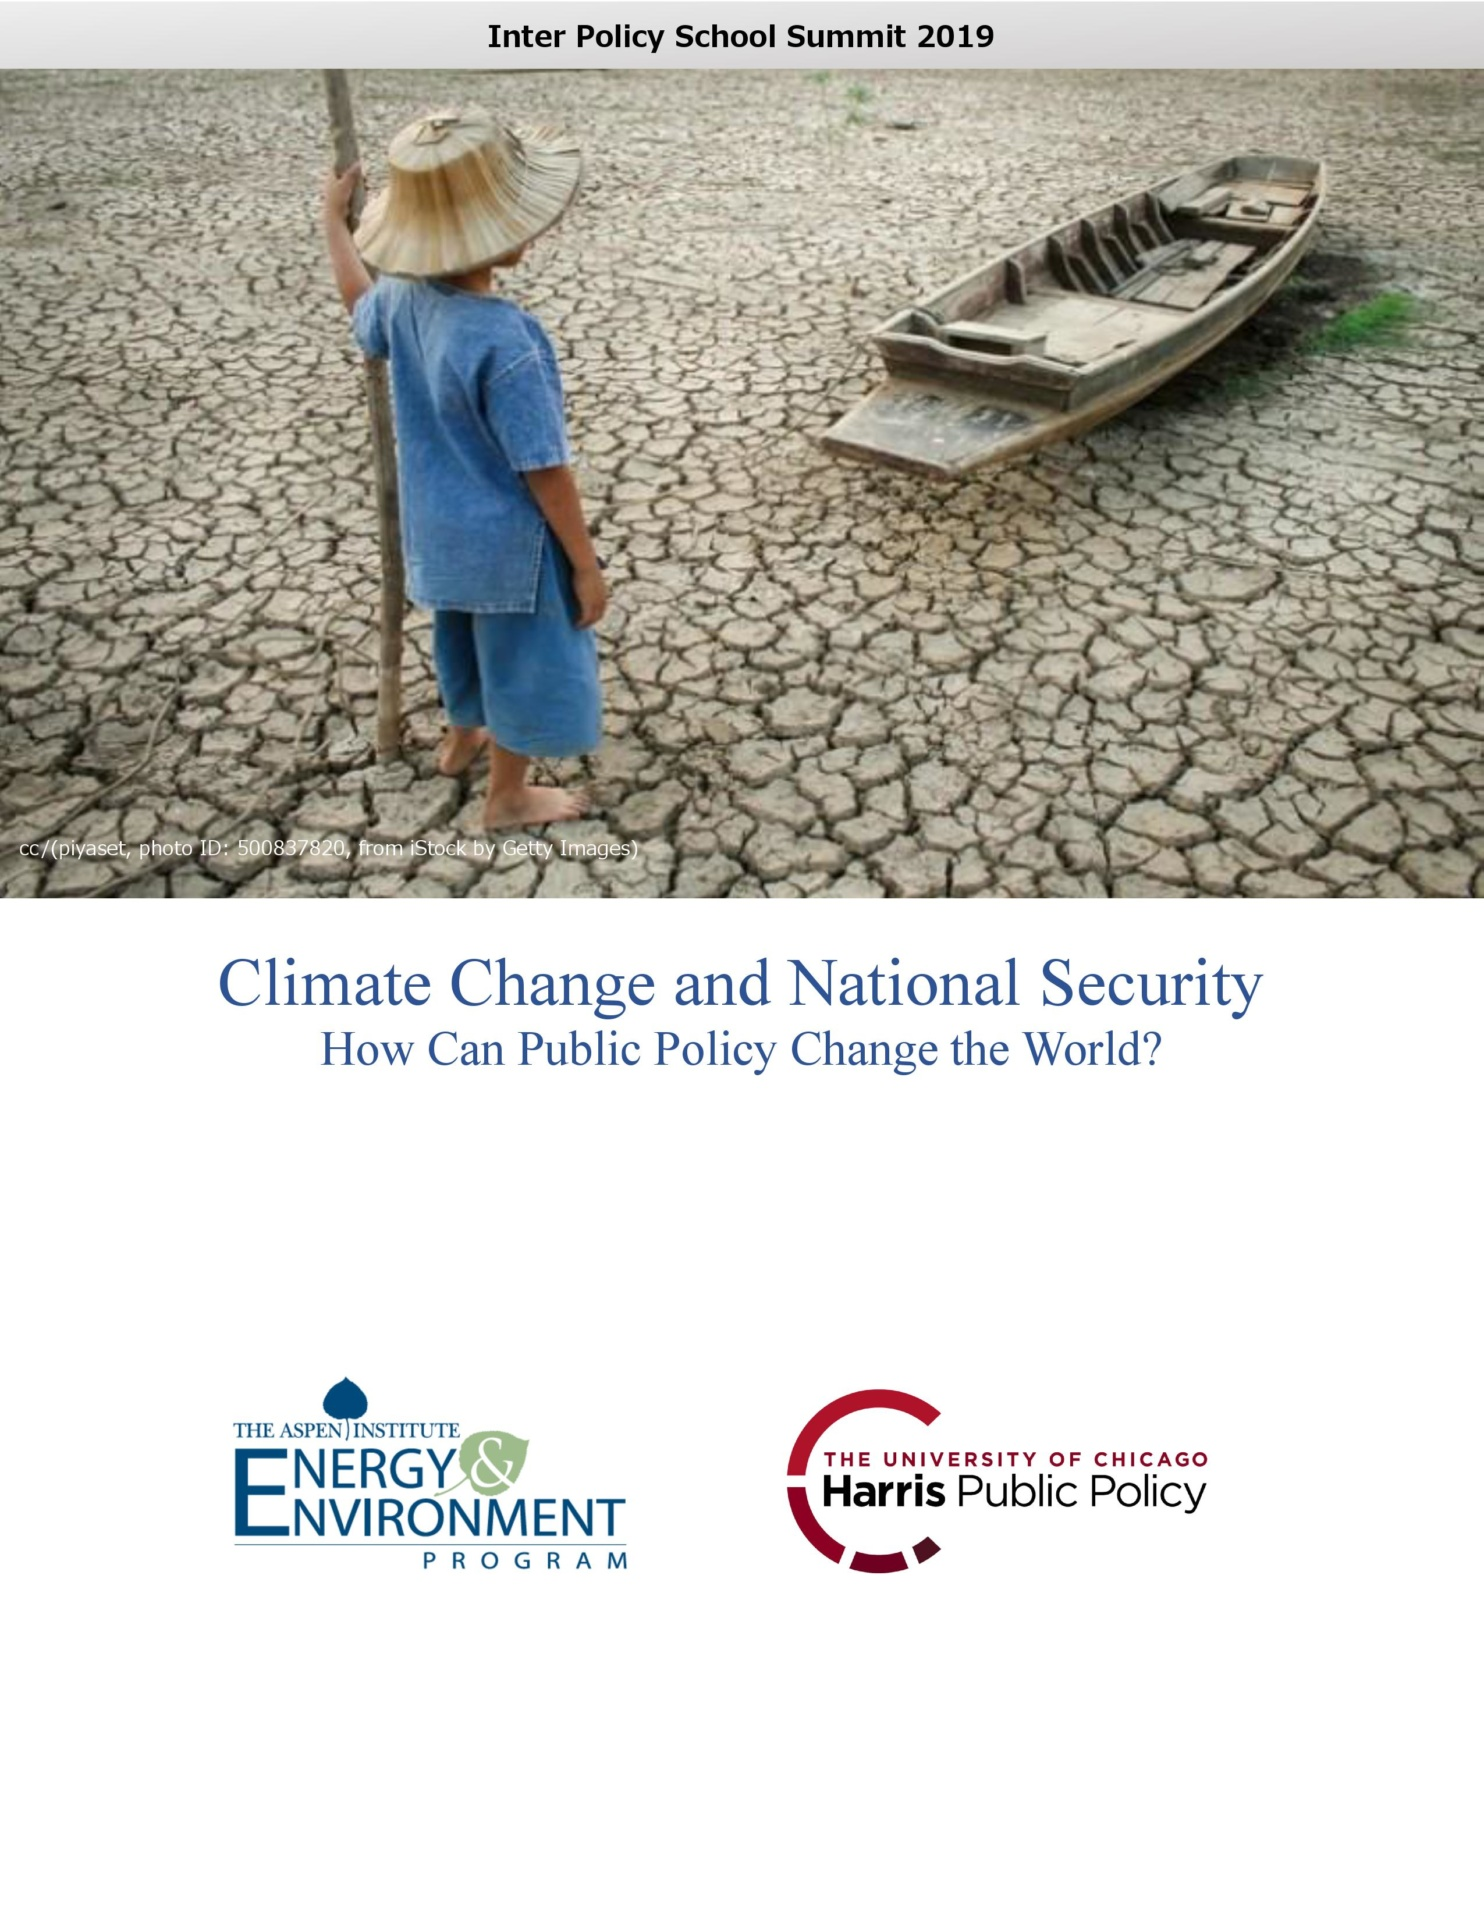 Climate Change and National Security: How Can Public Policy Change the World?